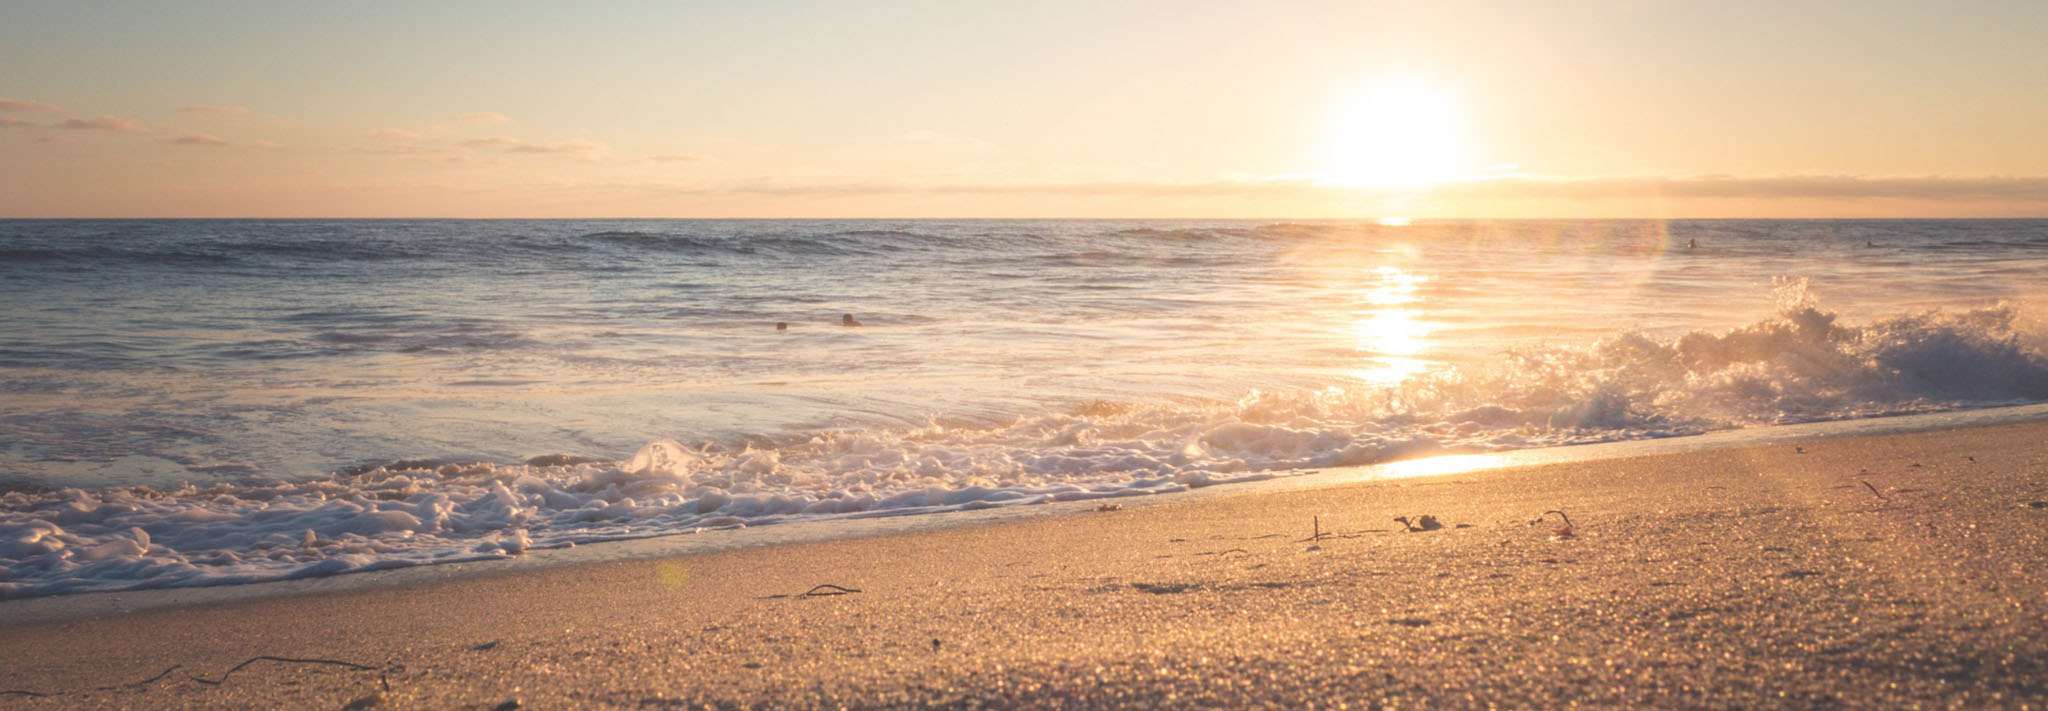 sea-beach-sunset-header